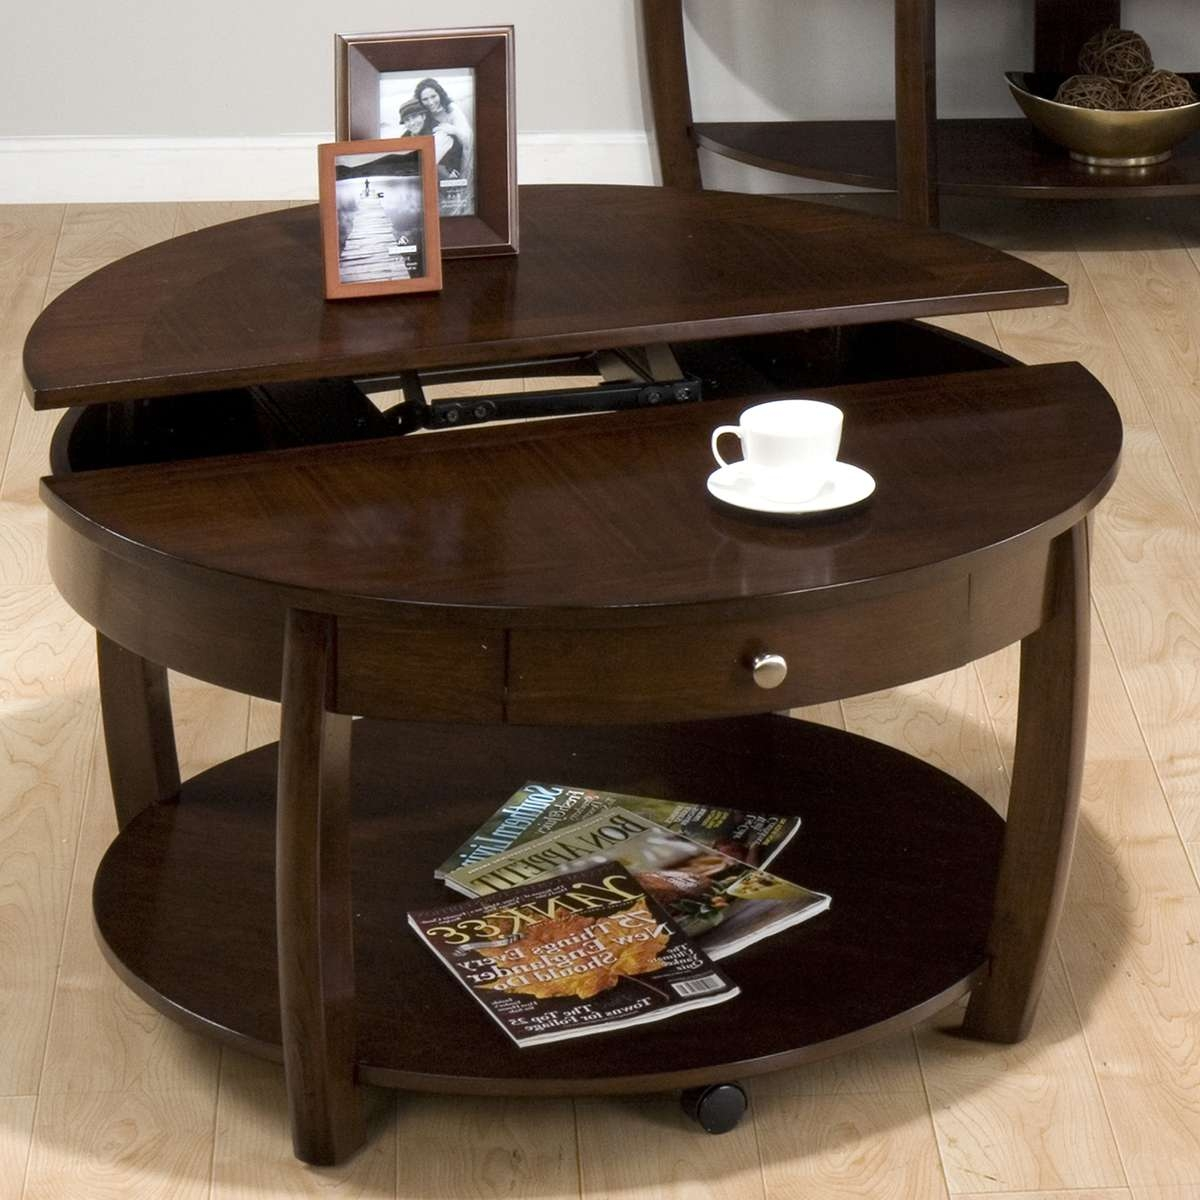 Coffee Tables Ideas: Coffee Table With Lift Top And Storage Lift Within Favorite Lift Top Coffee Tables With Storage (View 18 of 20)